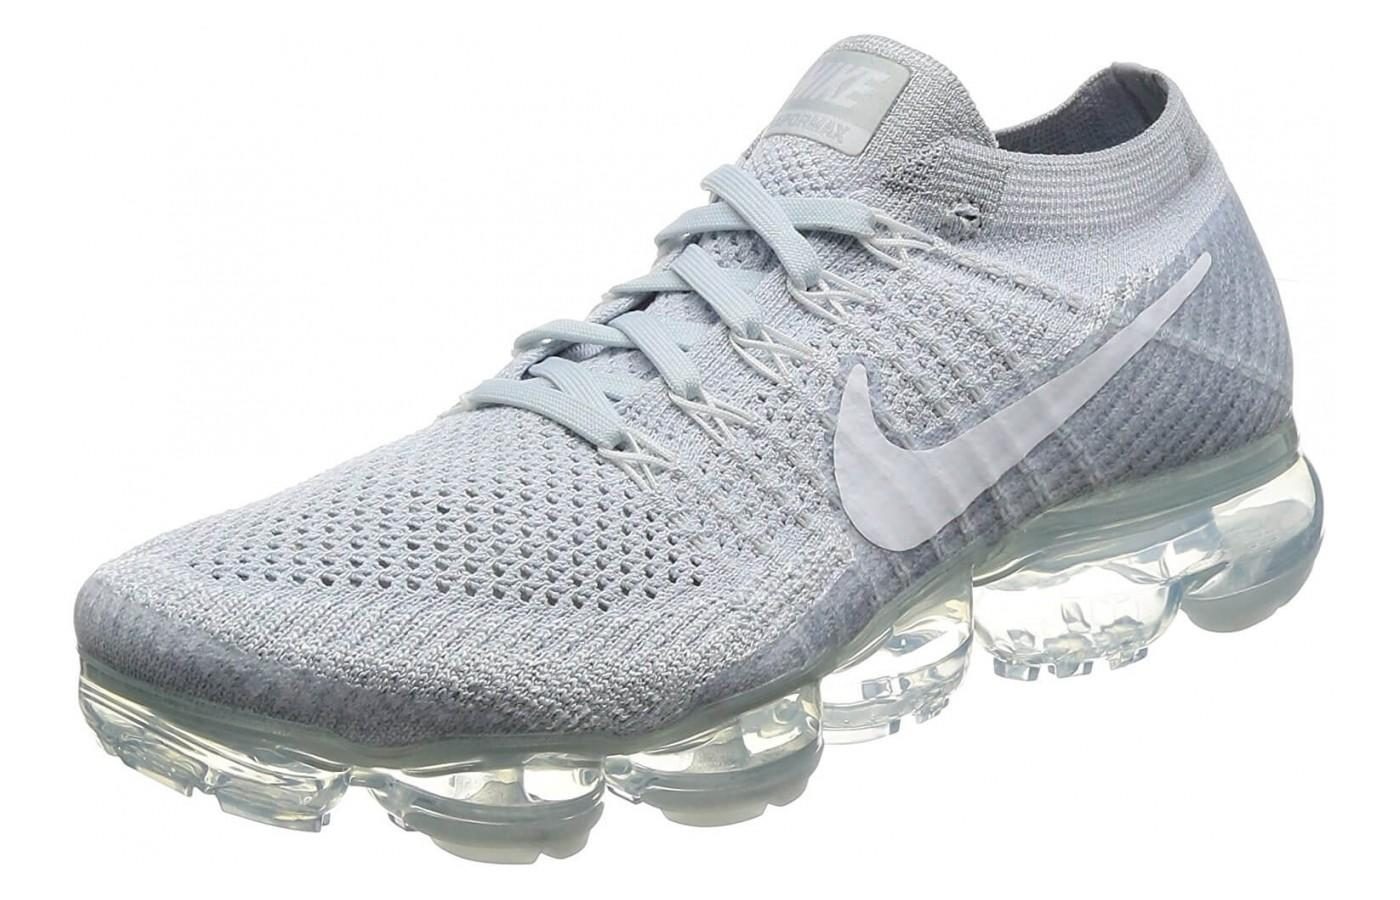 premium selection e8ecf 452ee Nike Air Vapormax Flyknit. The platinum coloring and unique design help  this shoe stand out.